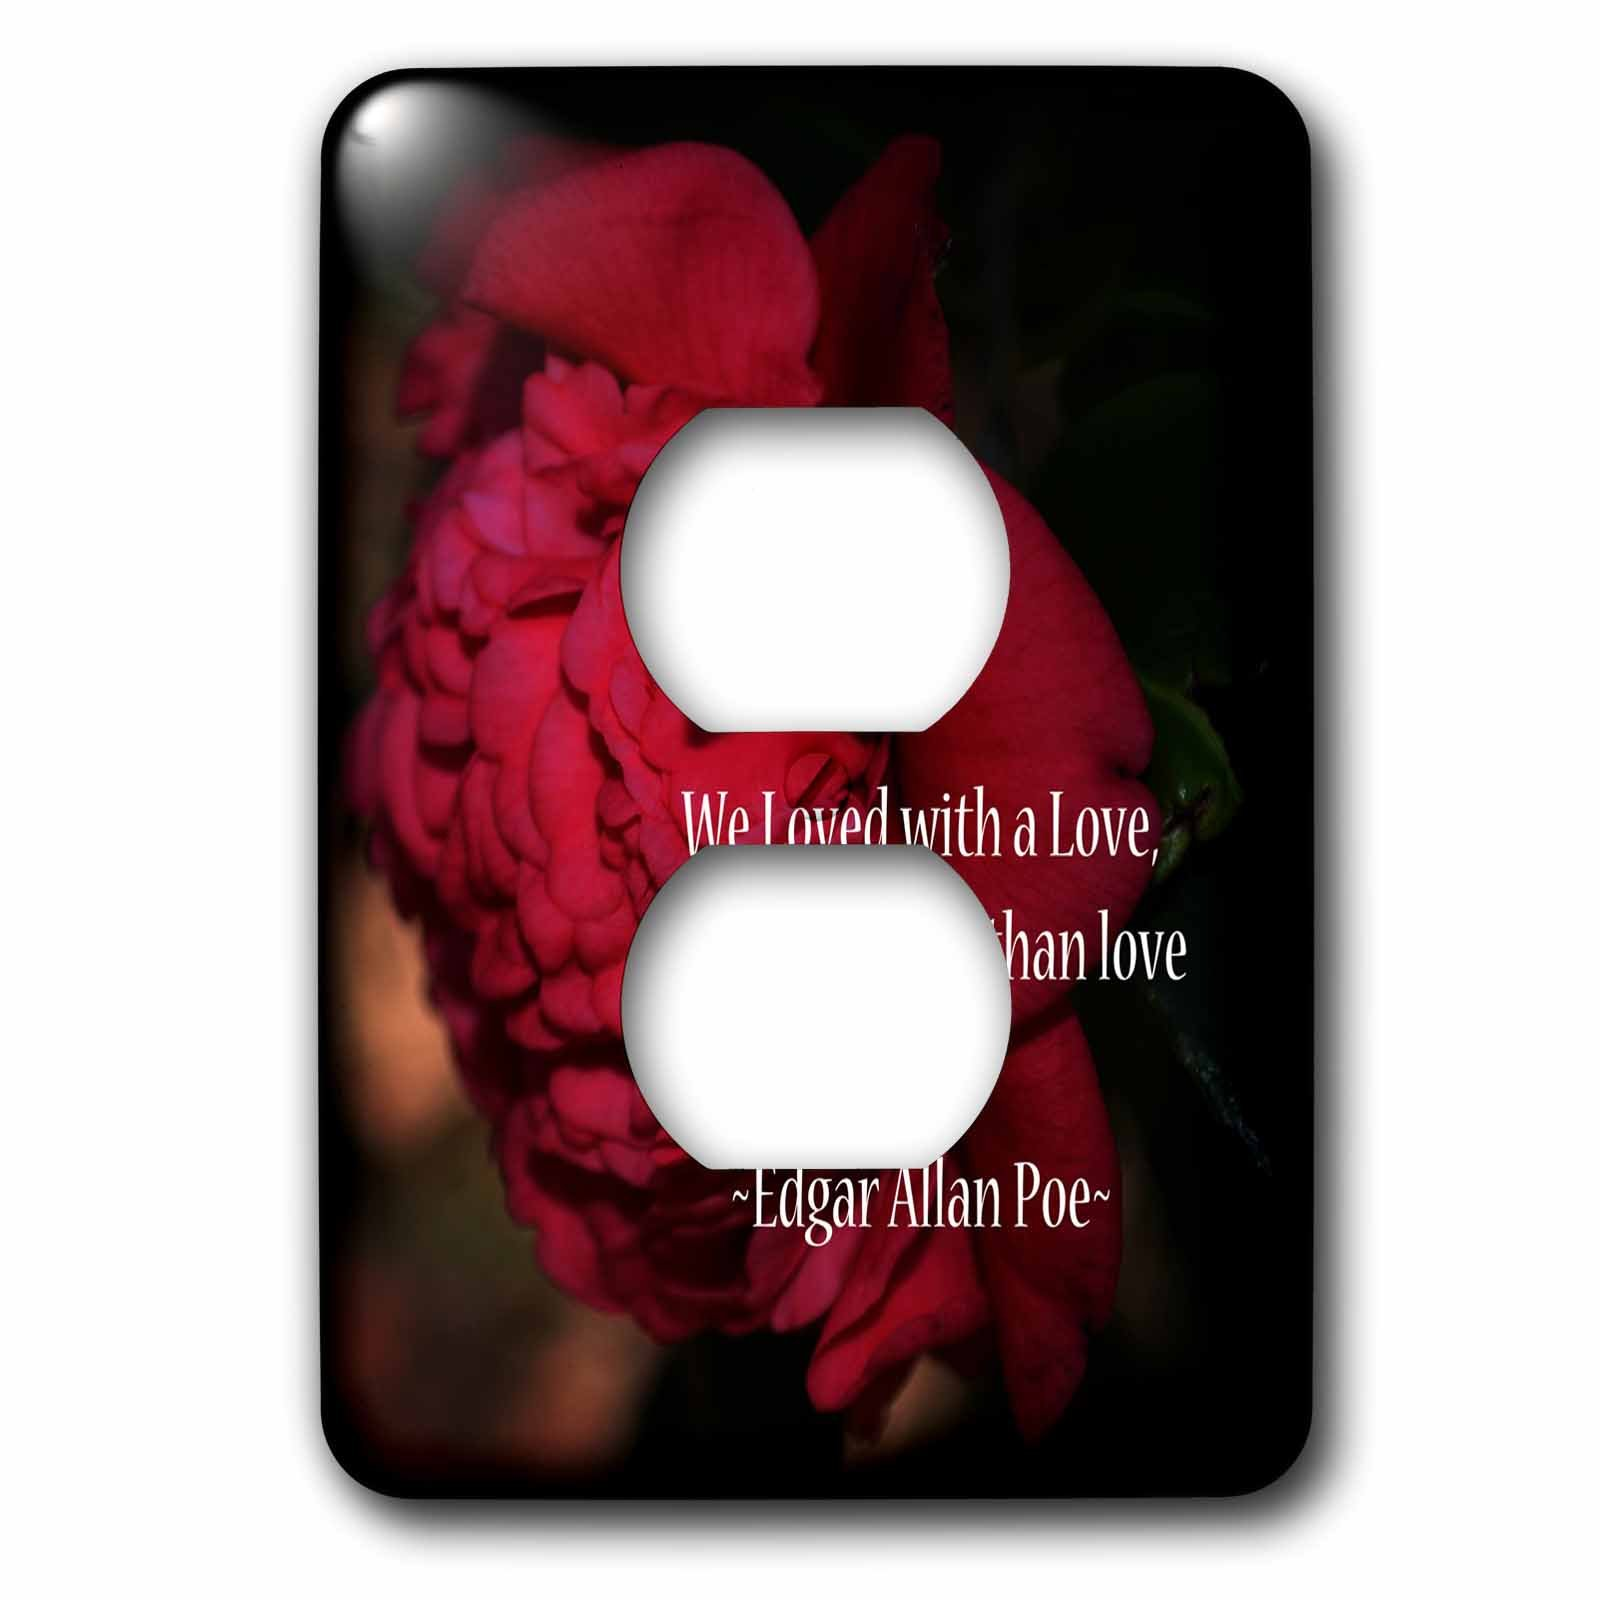 3dRose WhiteOaks Photography and Artwork - Inspirational - More Than Love is an inspirational quote by Edgar Allan Poe - Light Switch Covers - 2 plug outlet cover (lsp_265330_6)